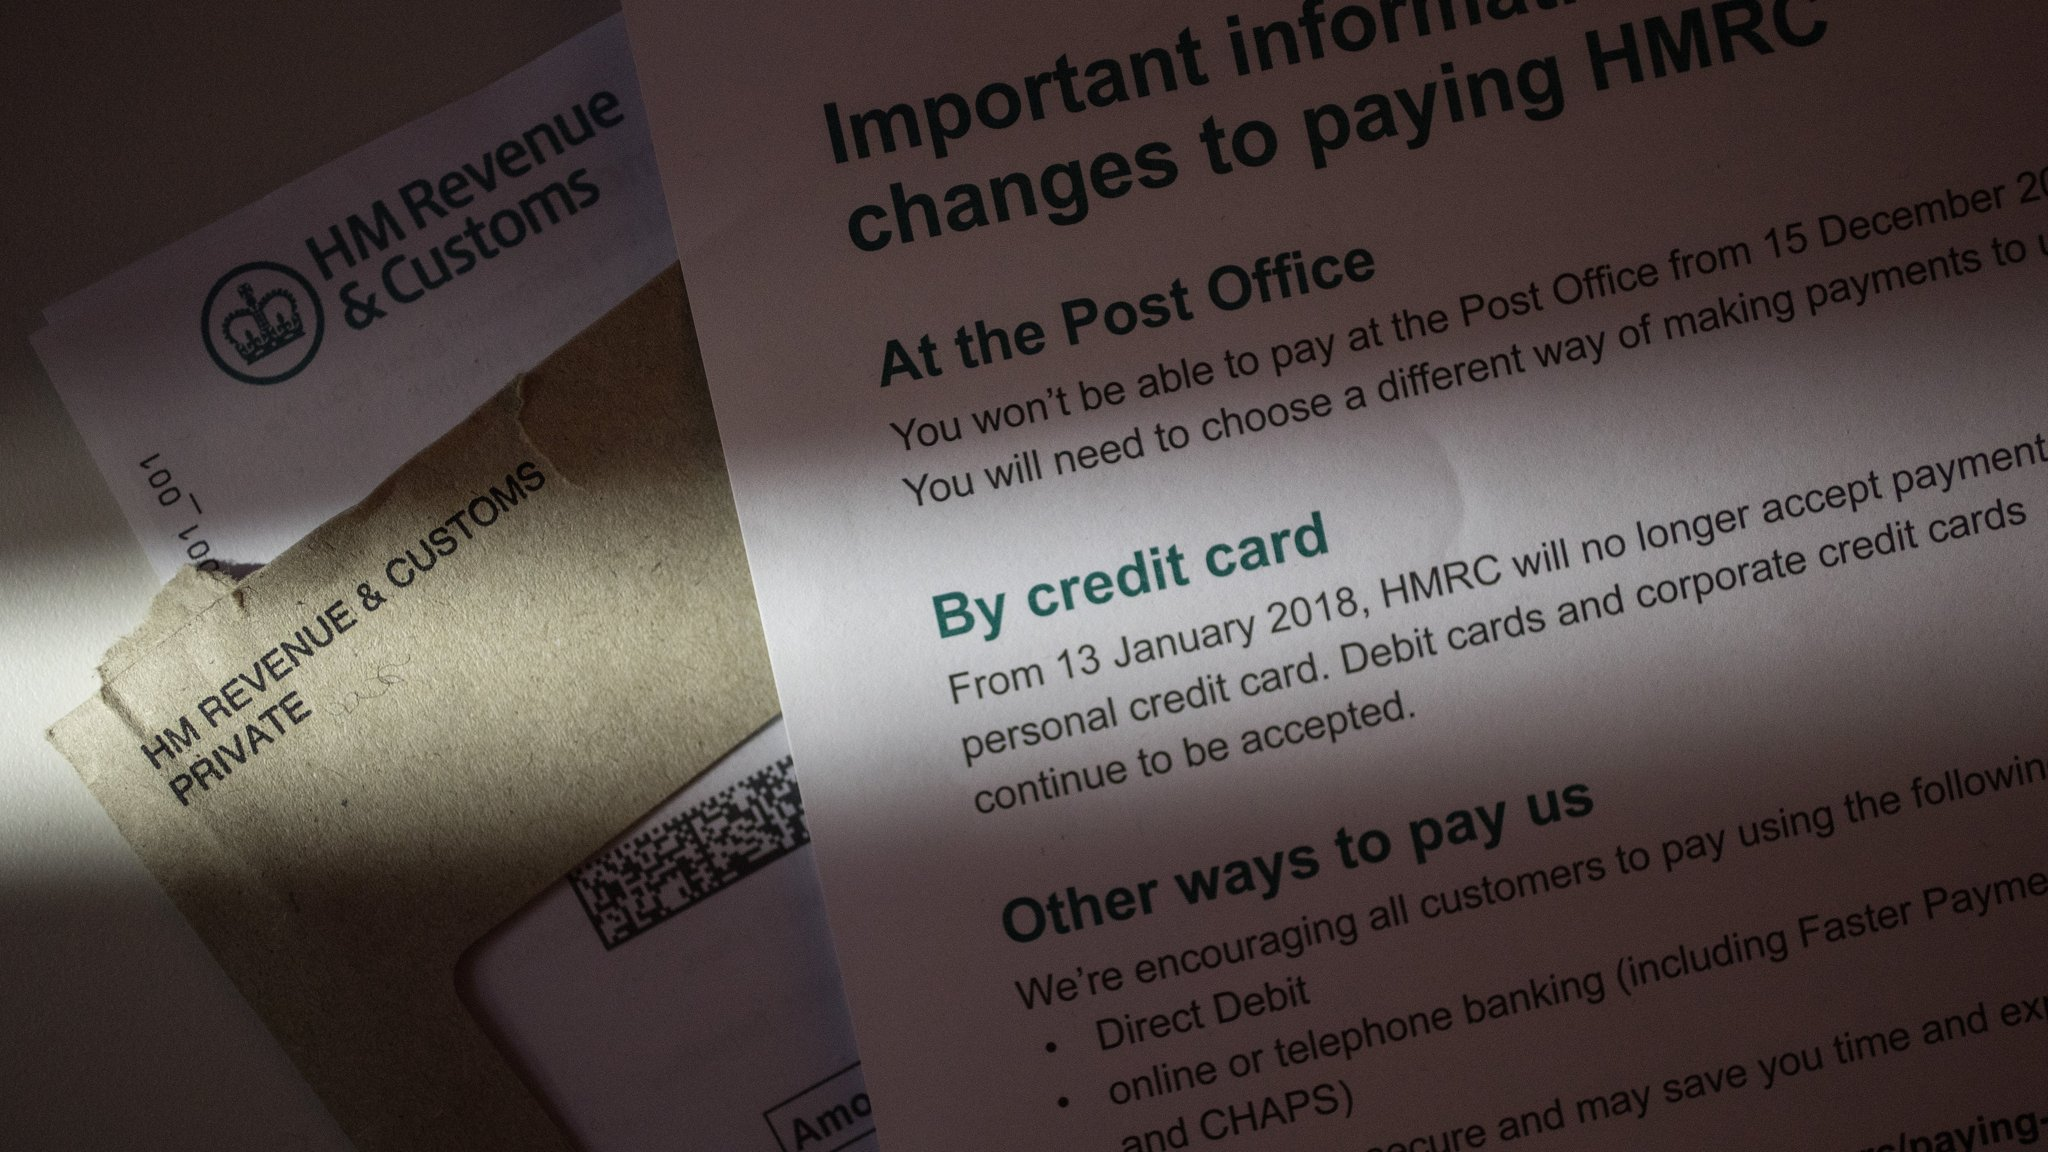 Hmrc bans credit card tax payments from january 13 financial times spiritdancerdesigns Images